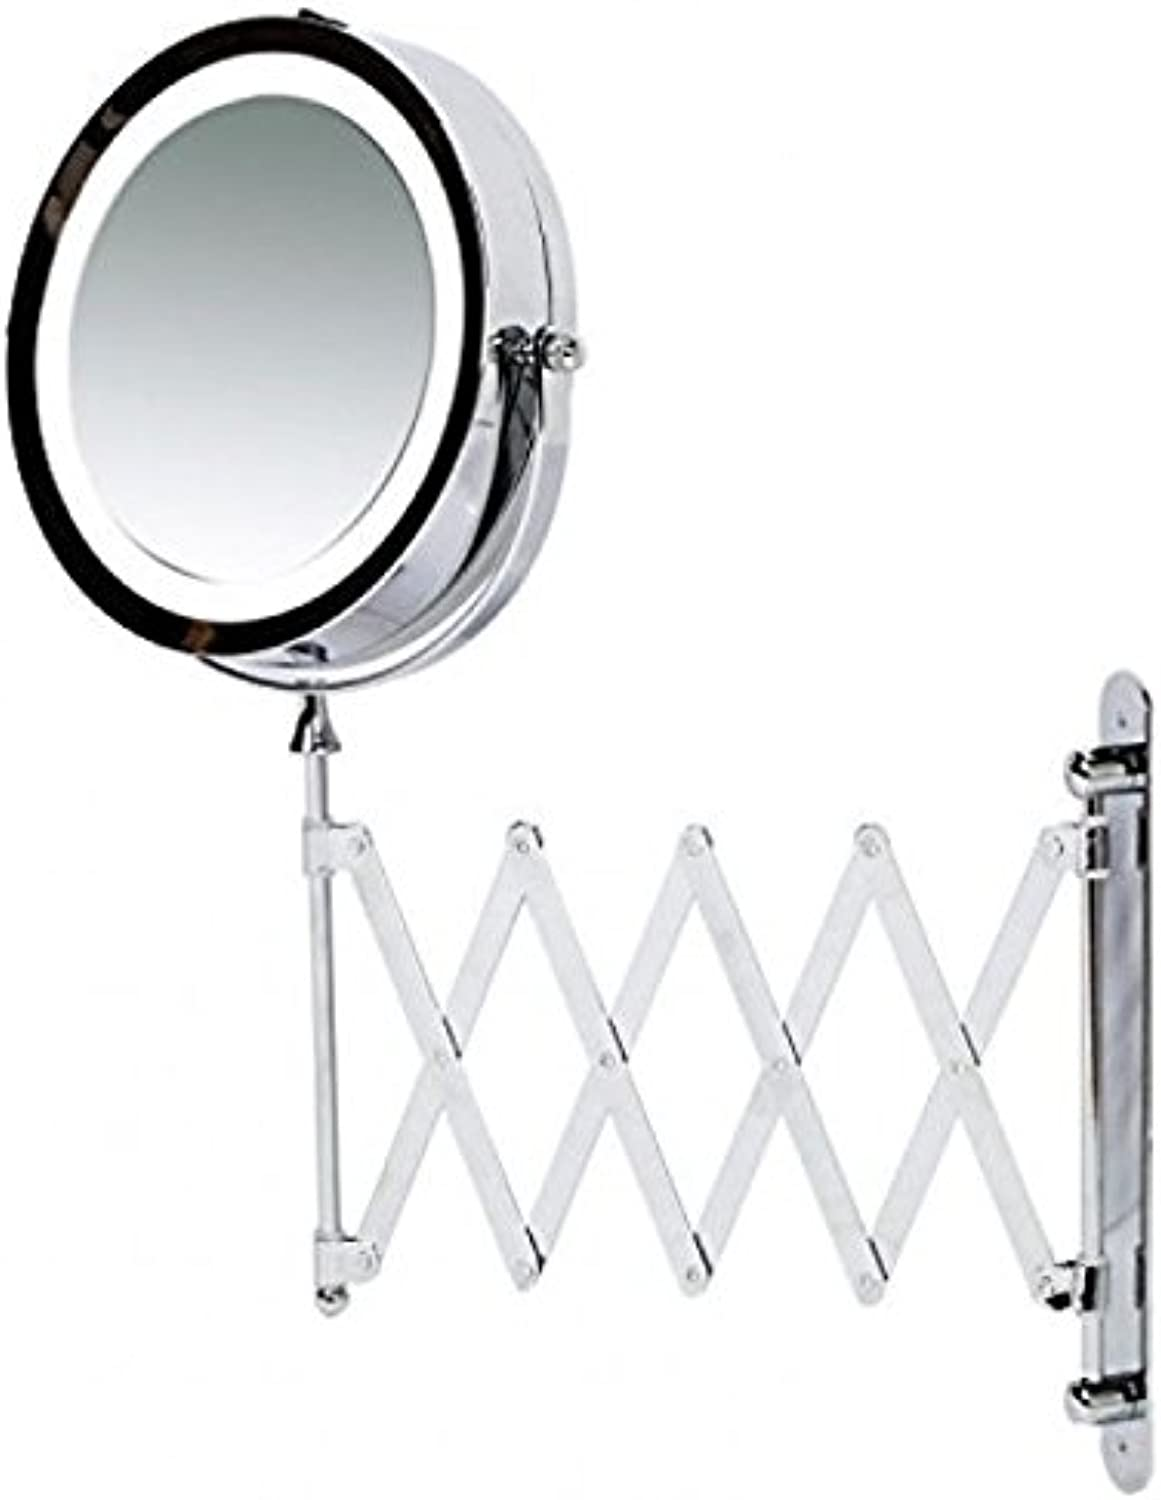 Makeup Mirror, Wall Mounted Magnifying with LED Light - Extending Vanity